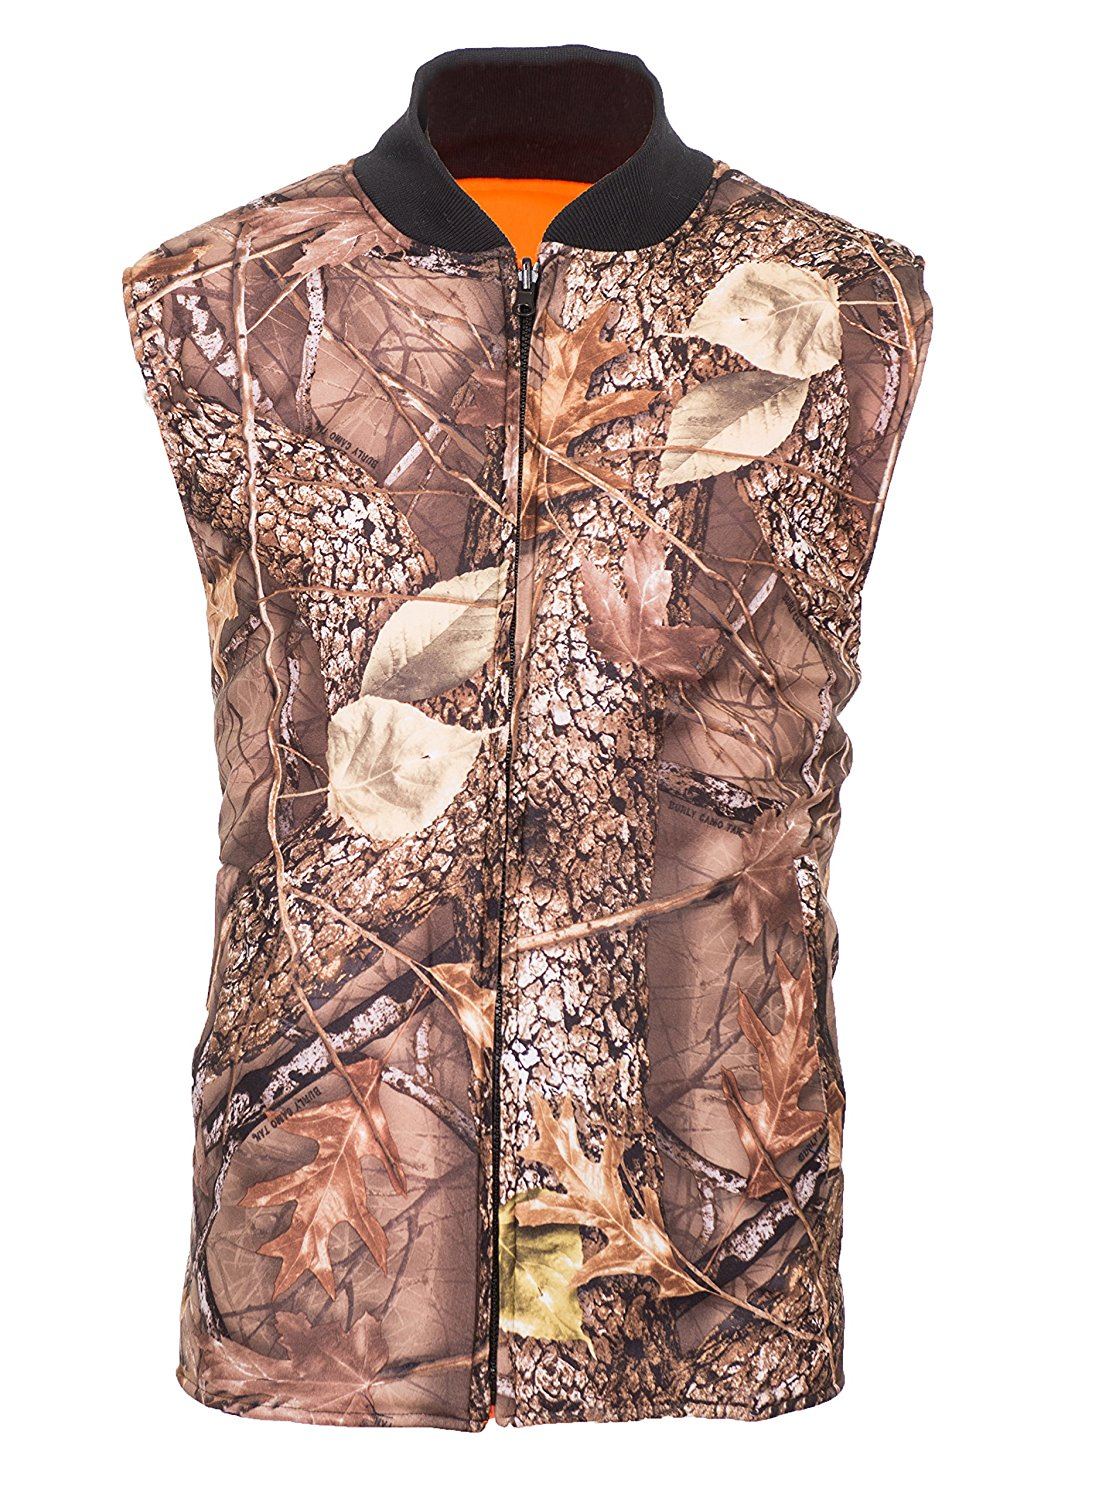 c3e98659fede6 Get Quotations · Reversible Burly Tan Camo/Blaze Orange Insulated Hunting  Vest